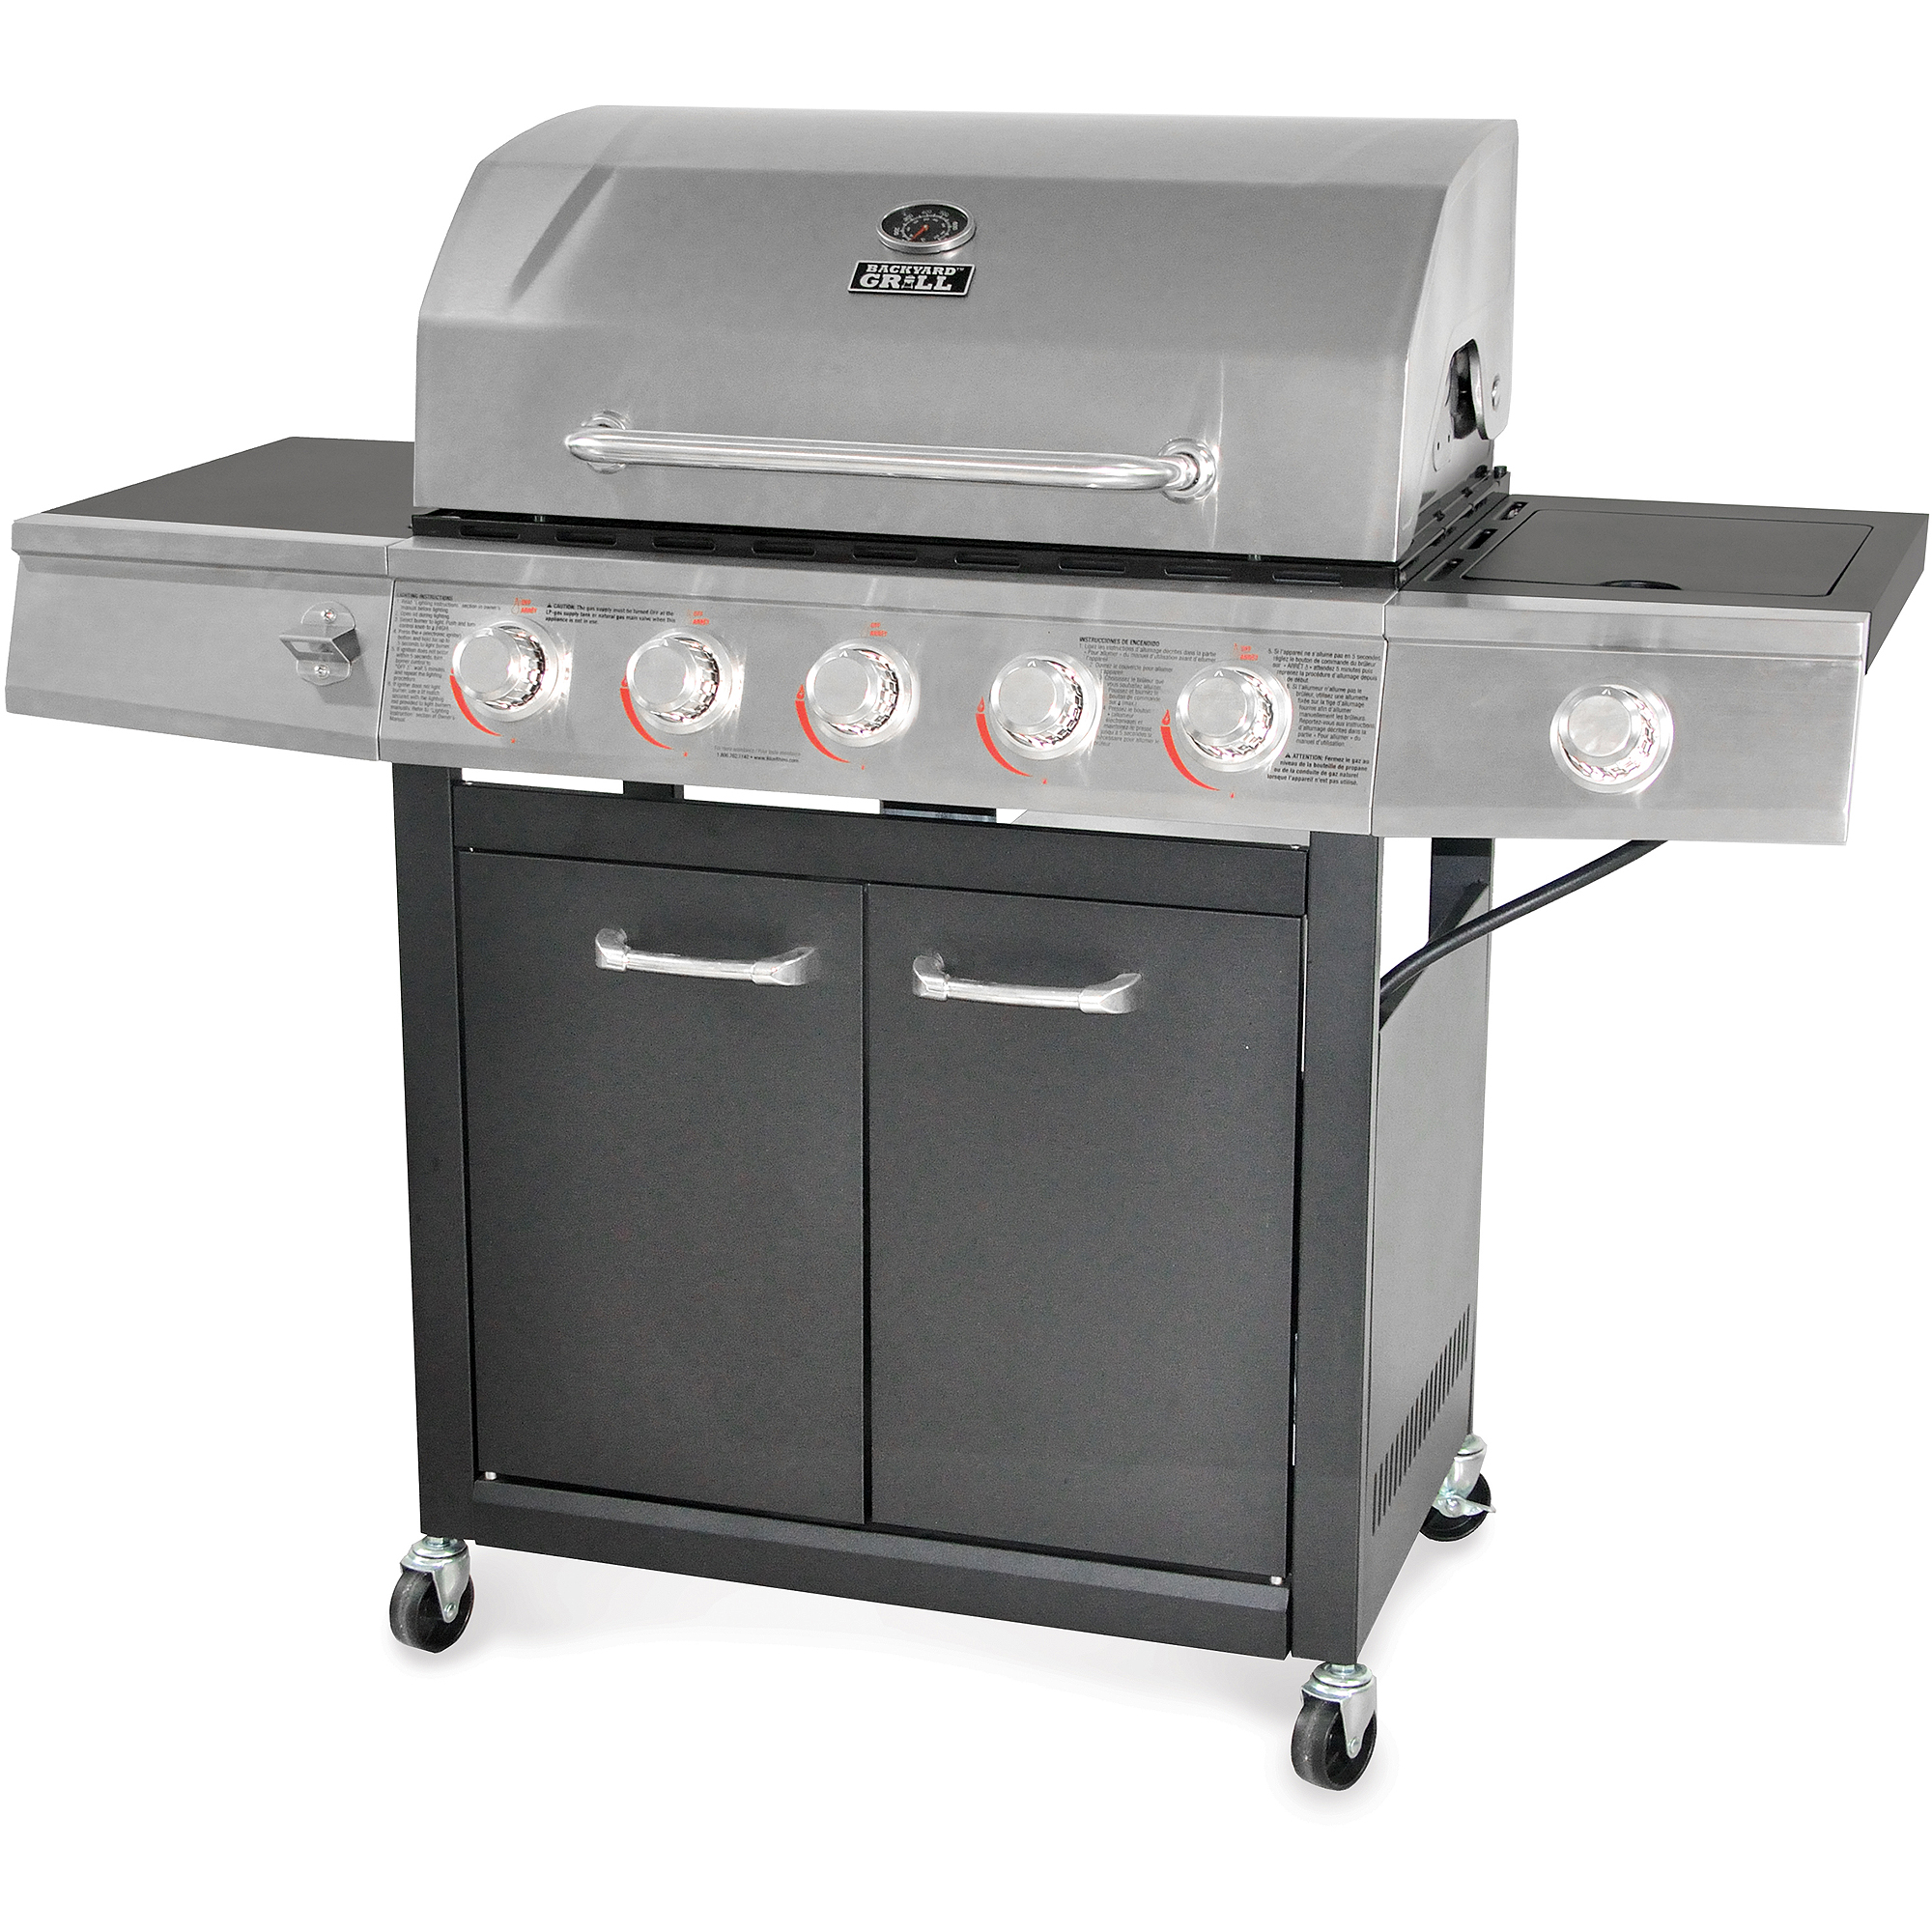 Backyard Grill 5-Burner Gas Grill, Stainless Steel